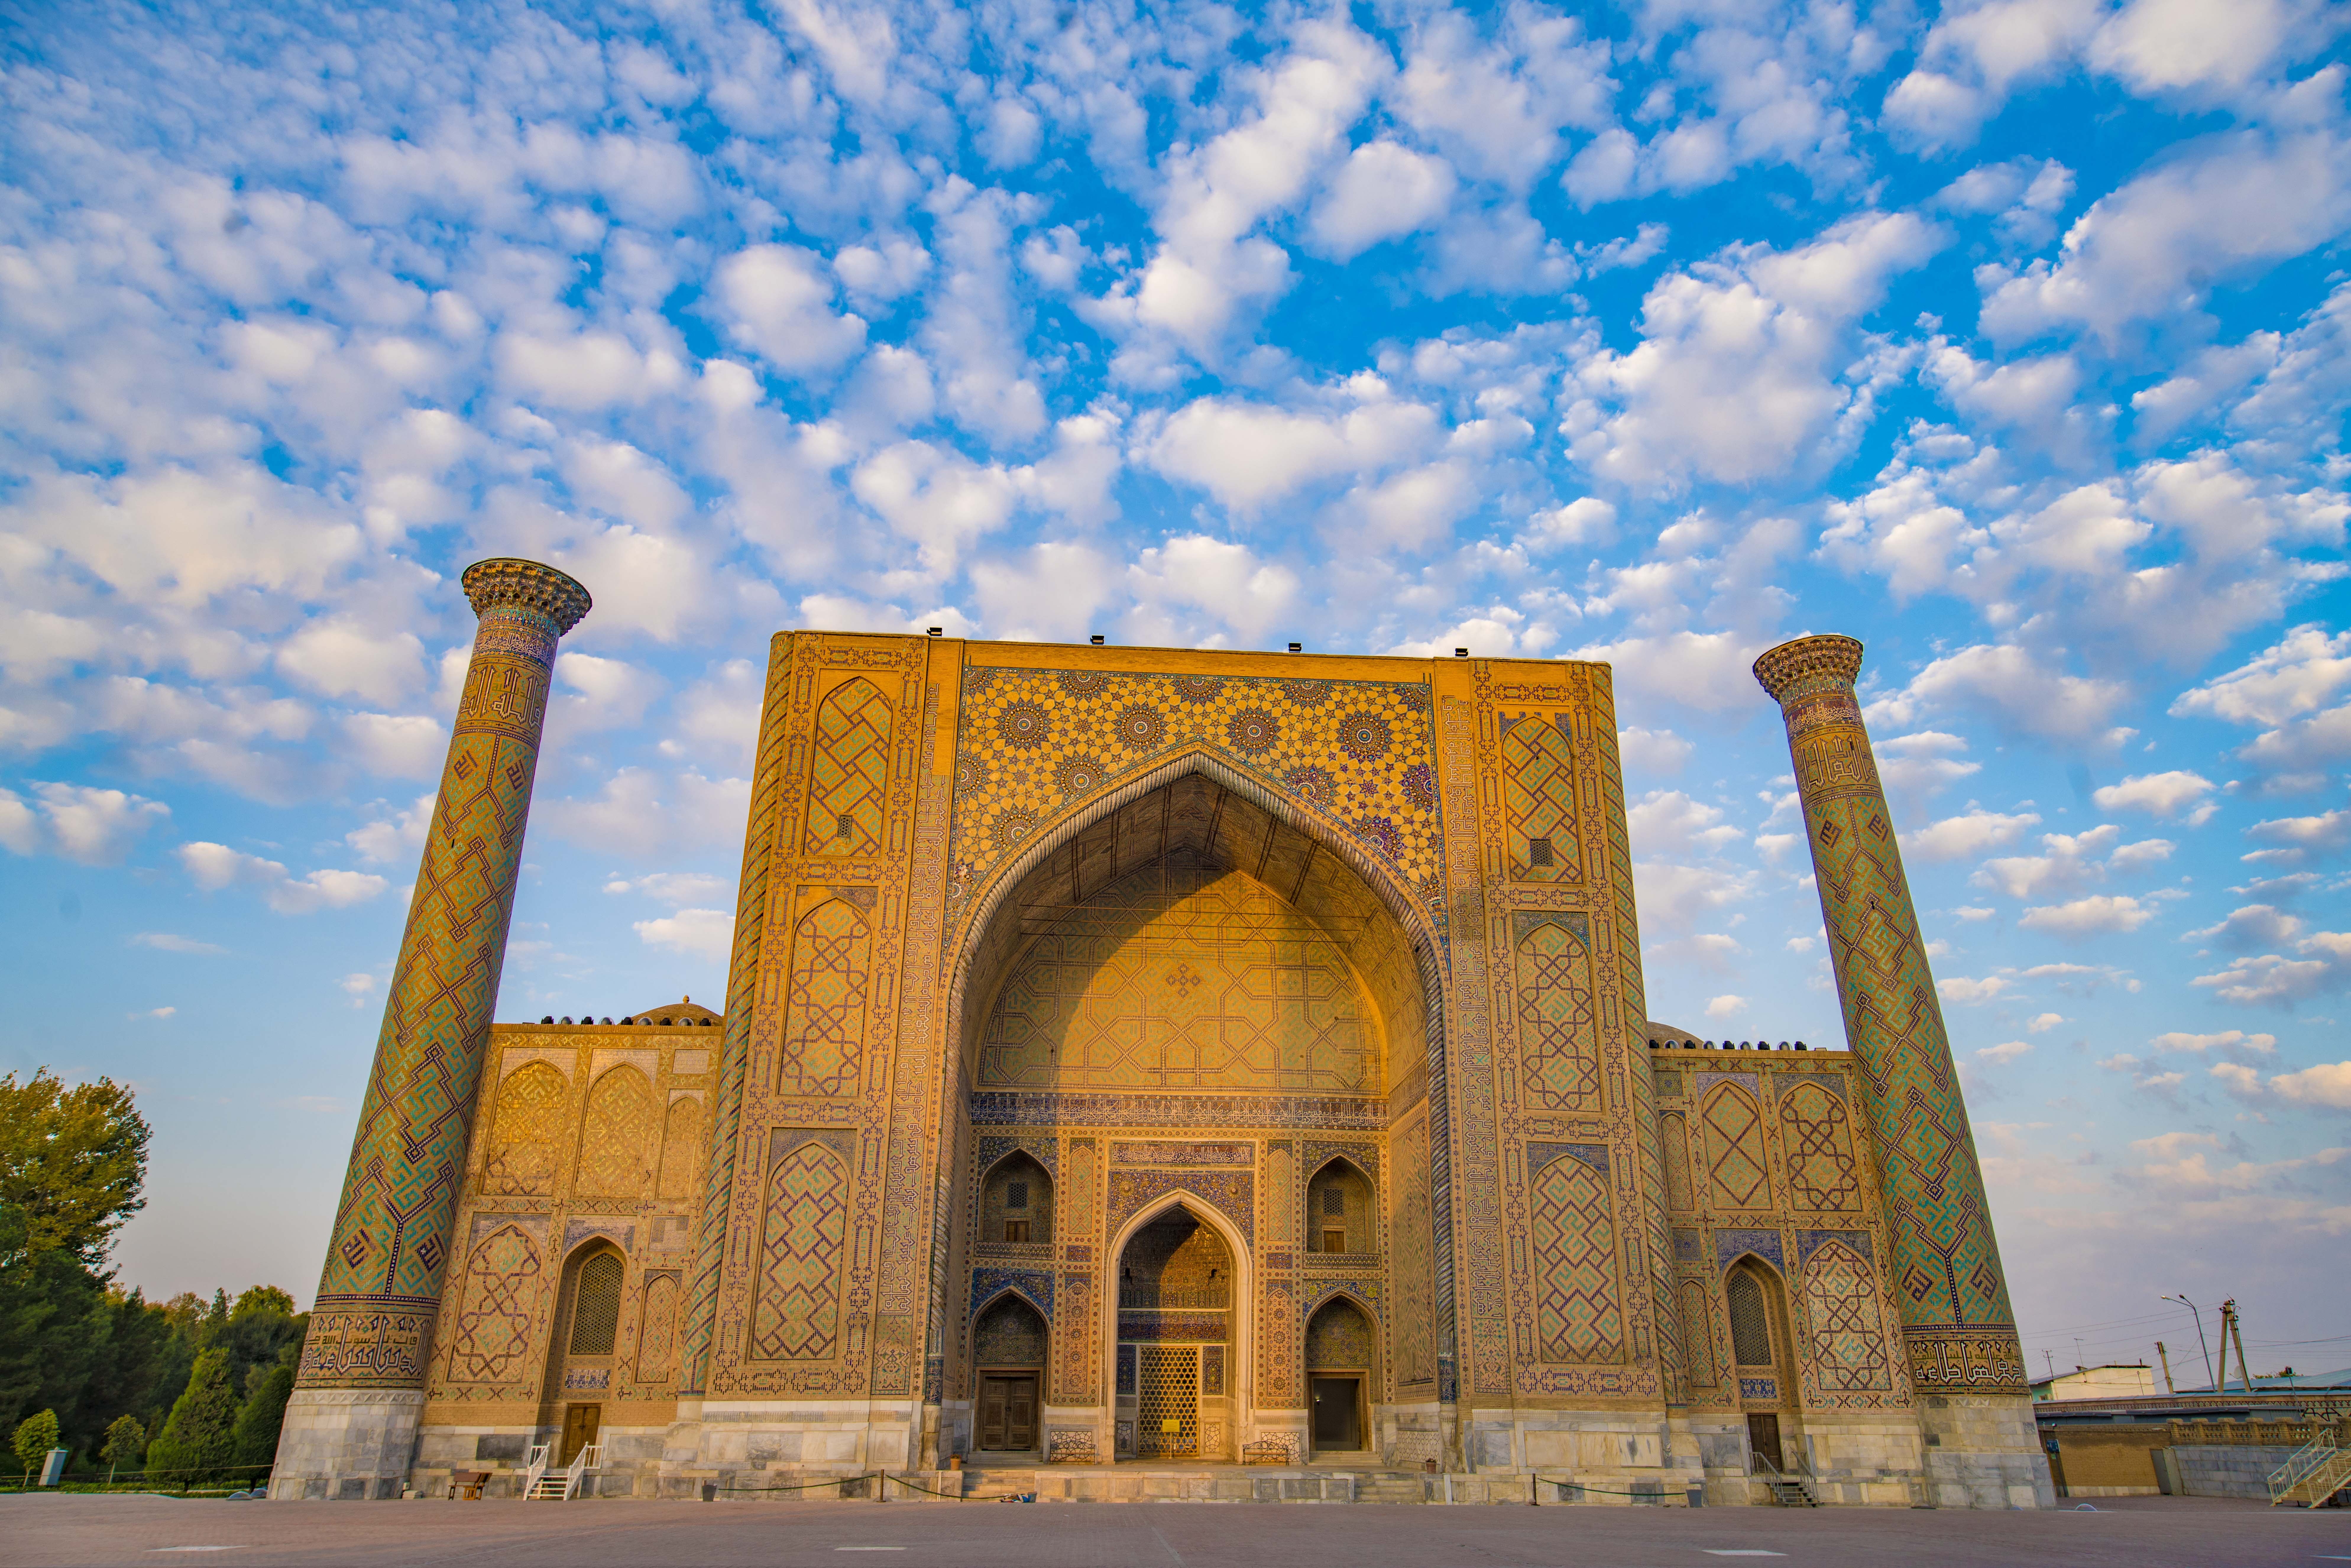 The Registan, Samarkand, Uzbekistan Photographed by Tom Till